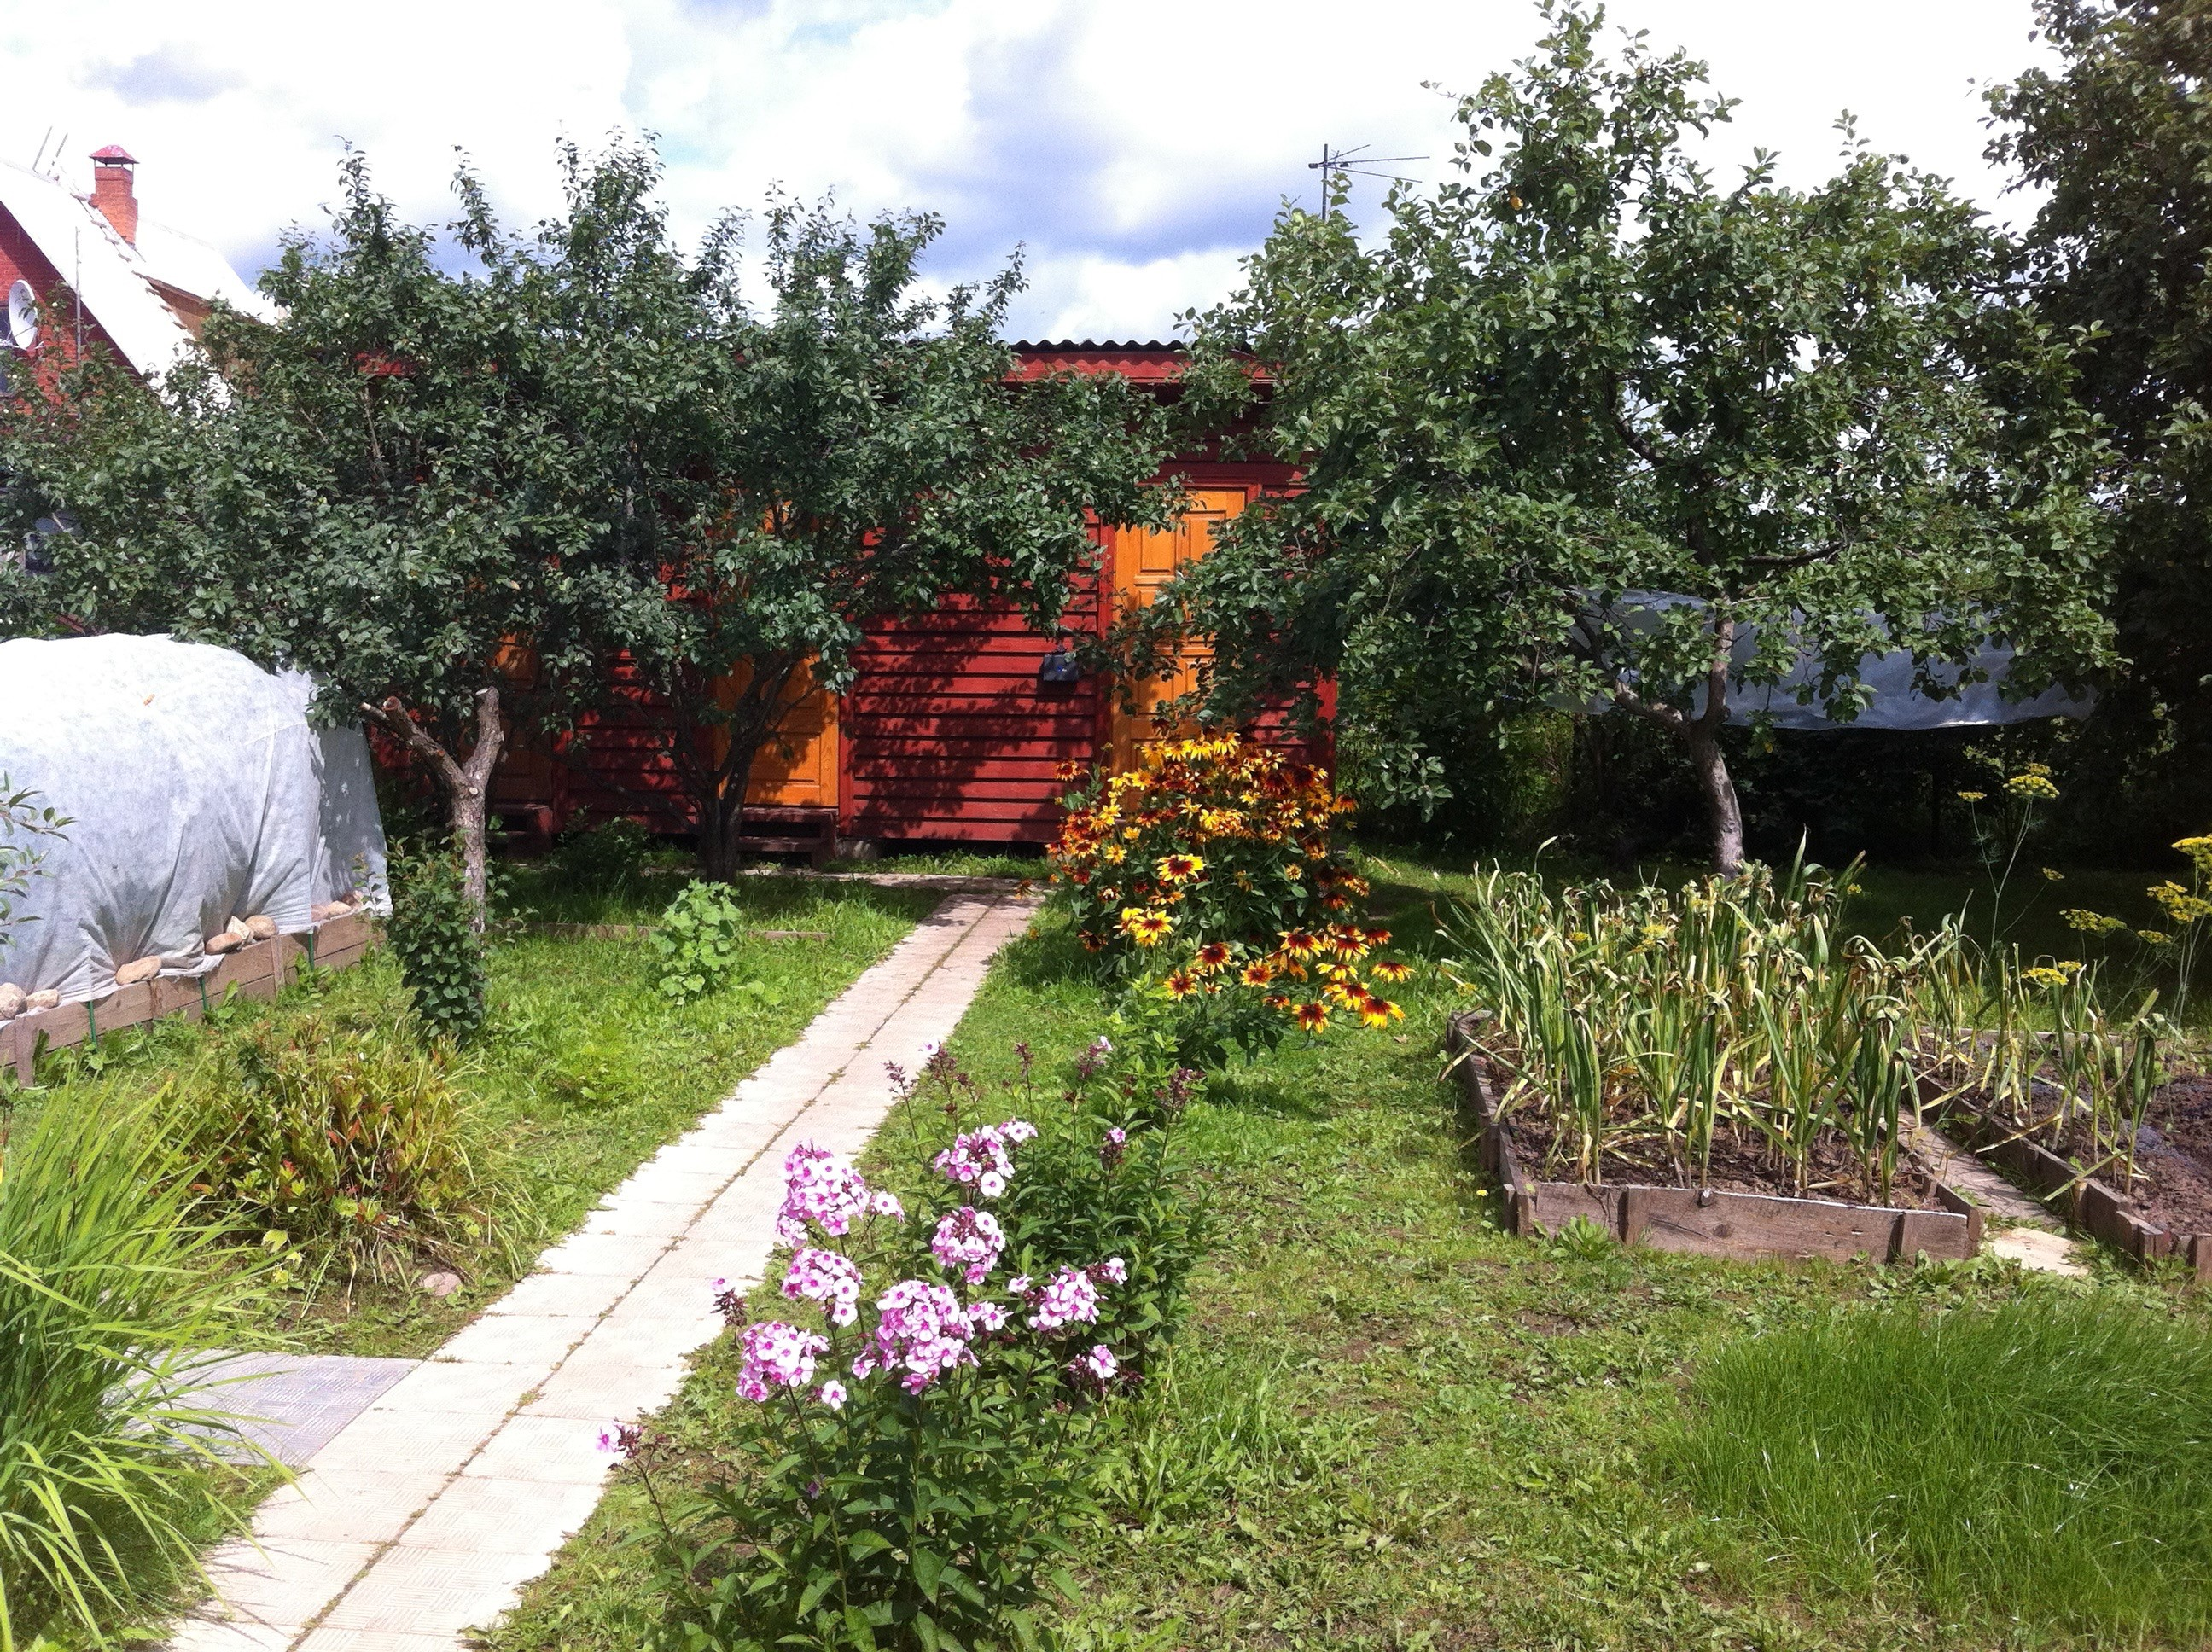 In the garden at a Russian dacha (summer house).